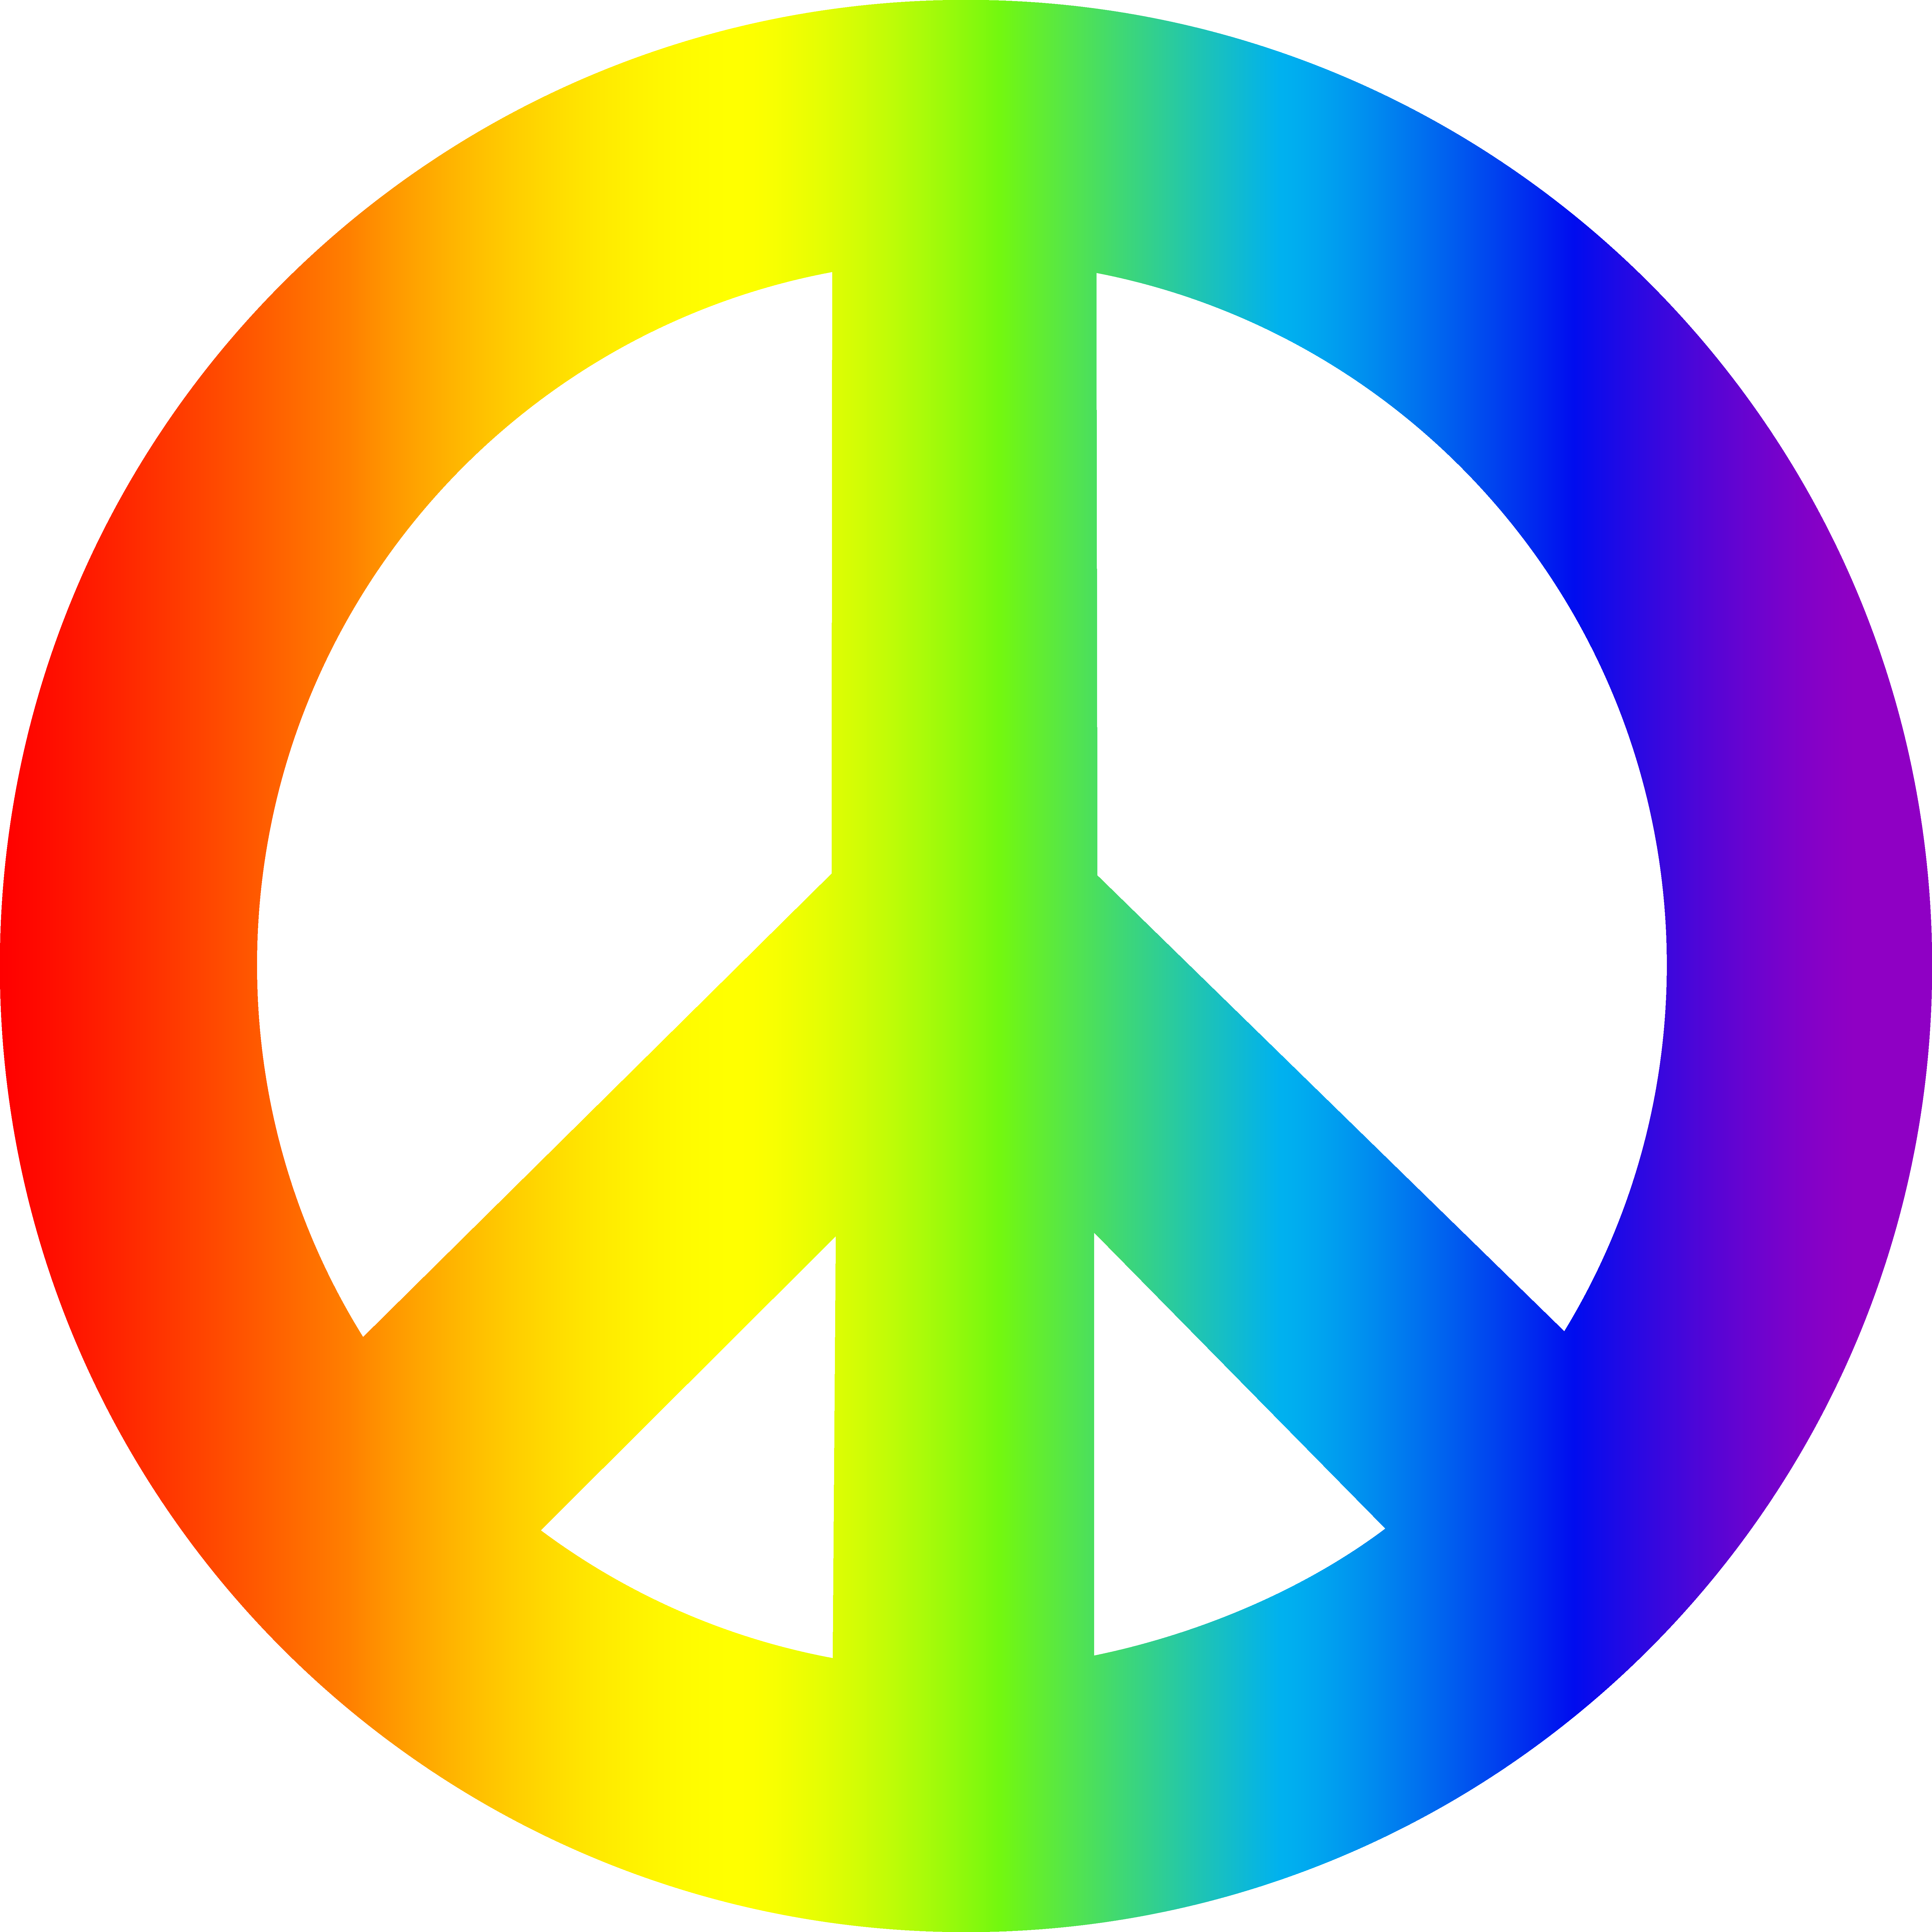 Peace clipart colorful Sign  clipart peace_sign_rainbow colorful